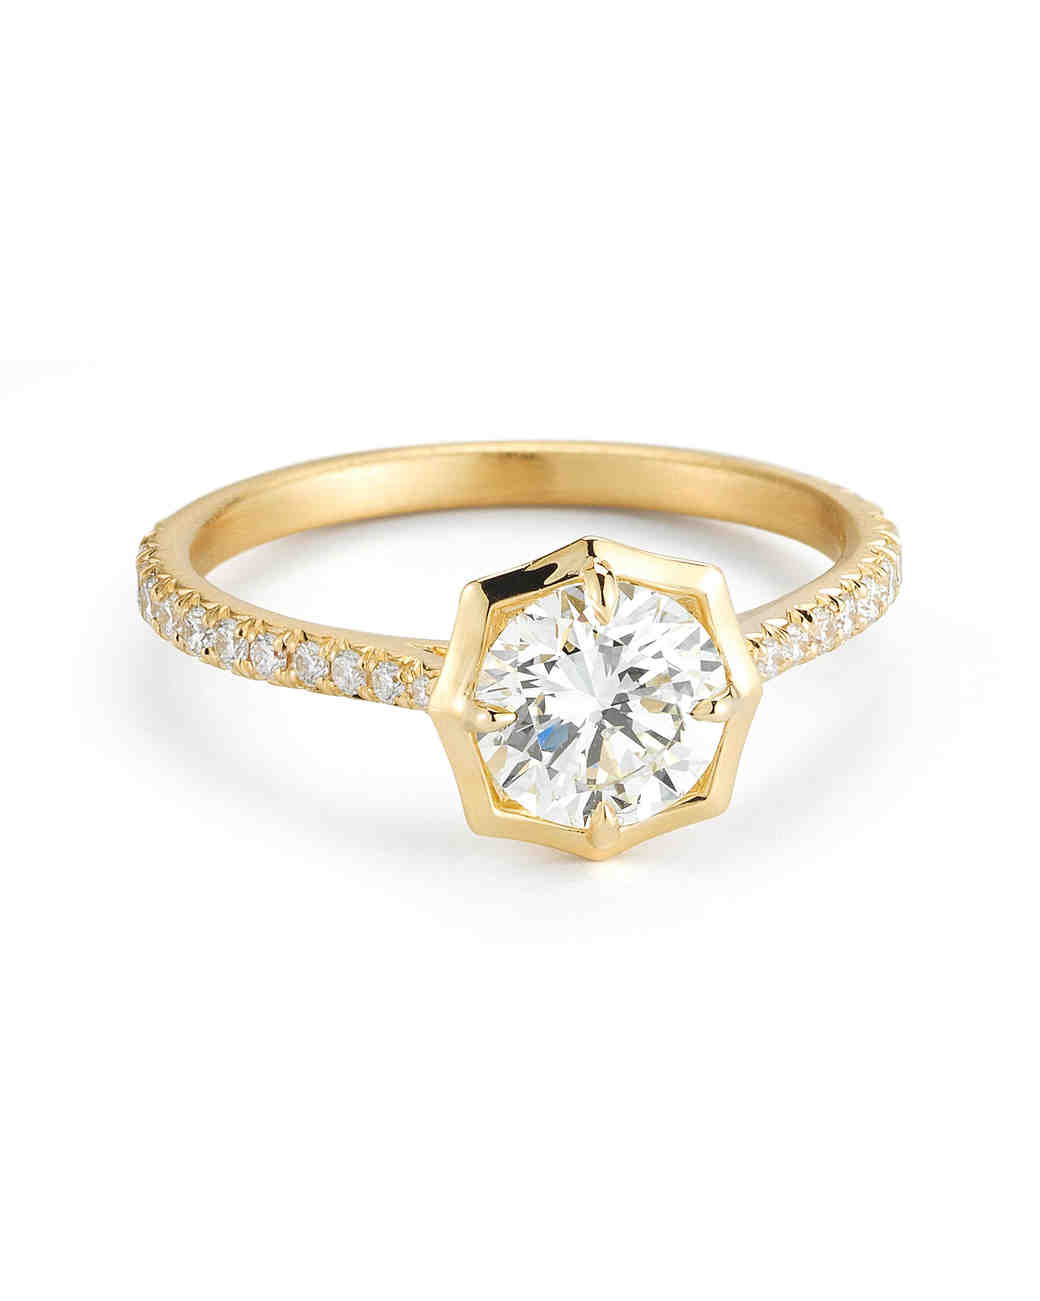 yellow gold engagement rings | martha stewart weddings cbfydpf